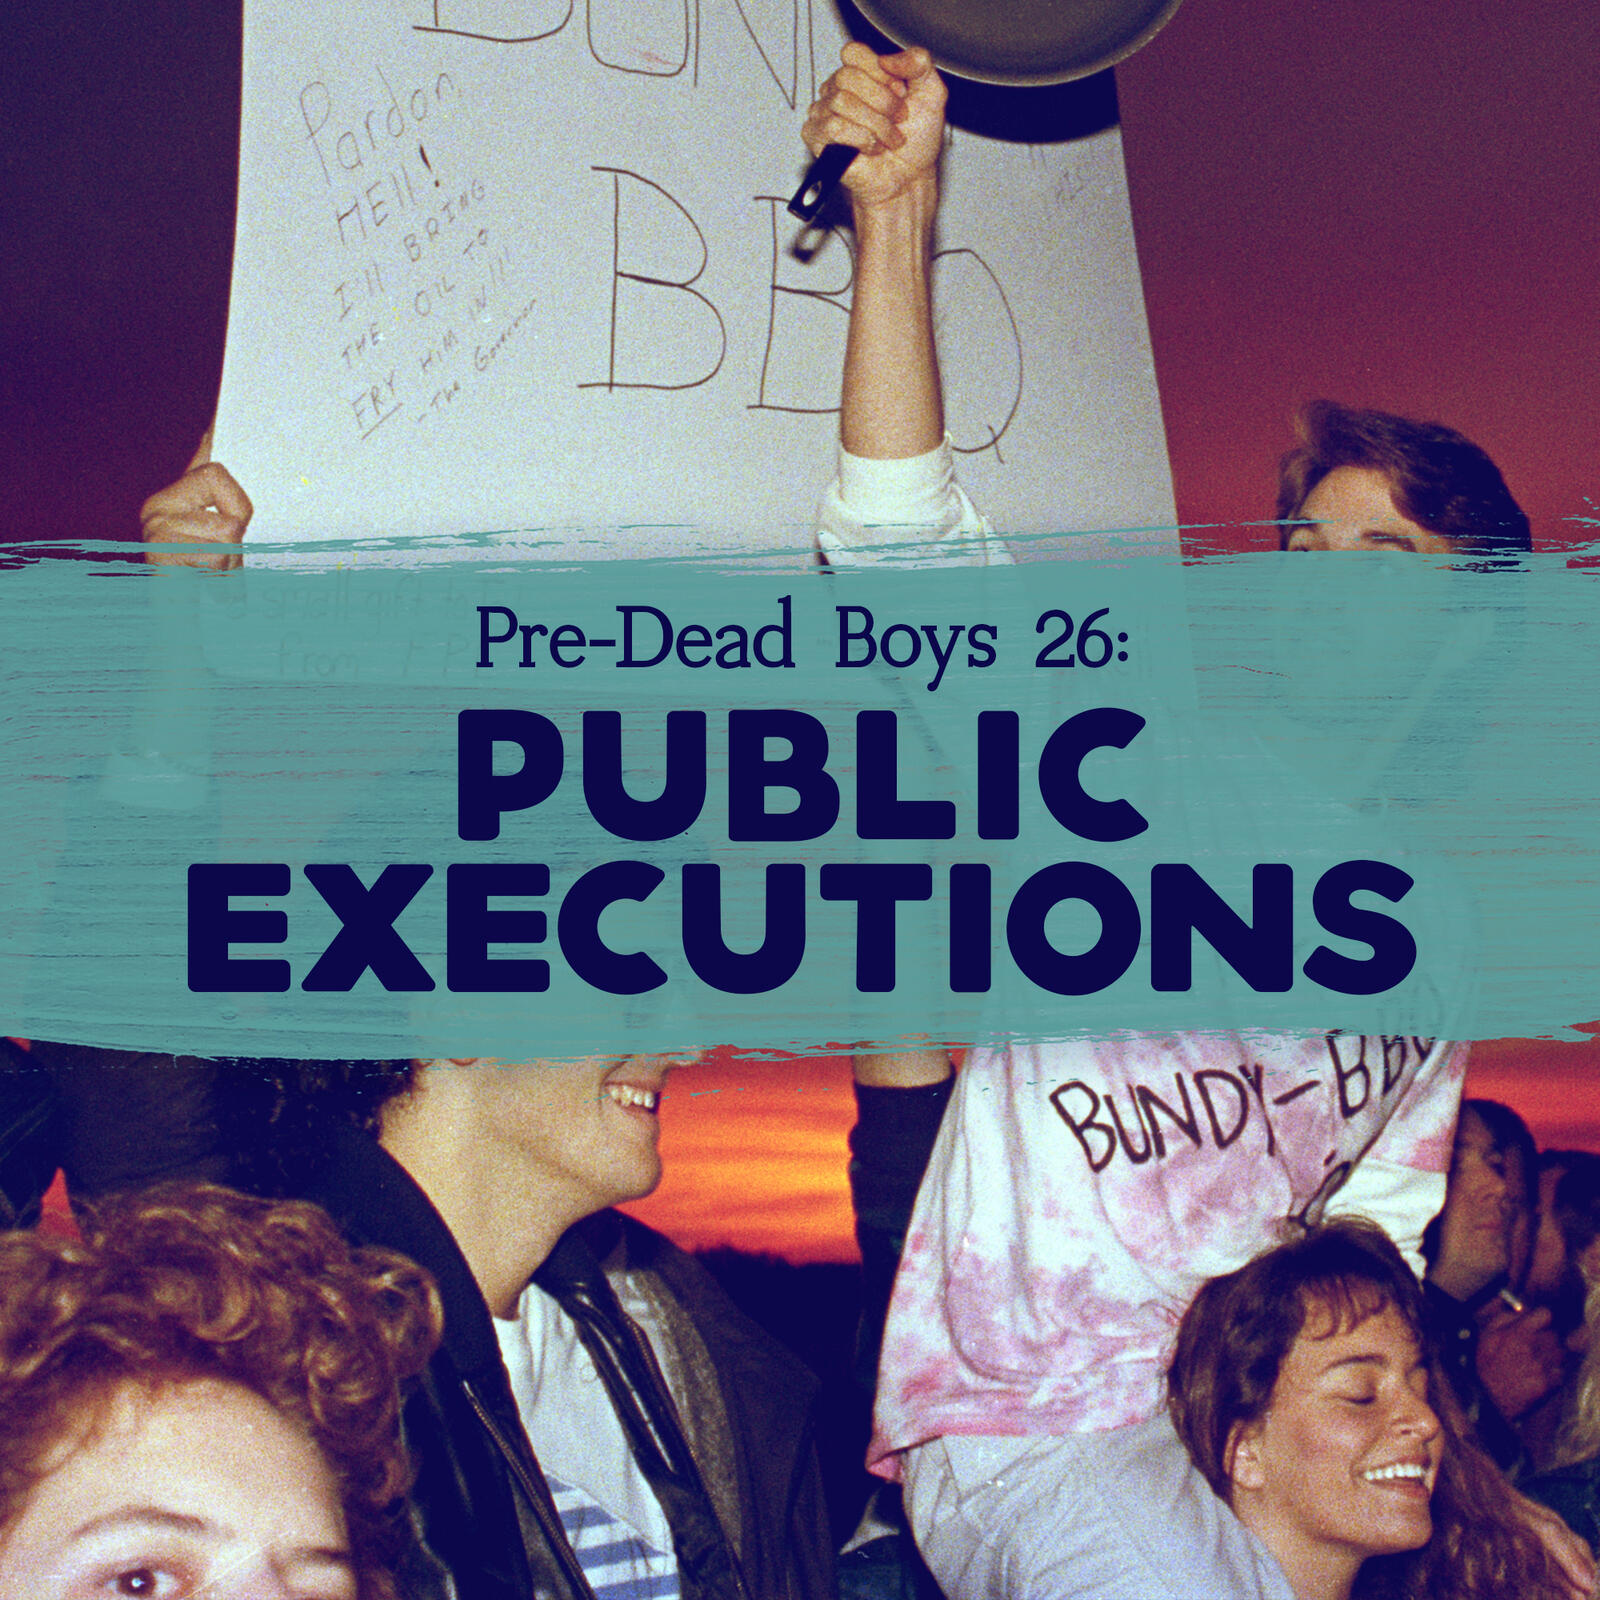 26: Public Executions